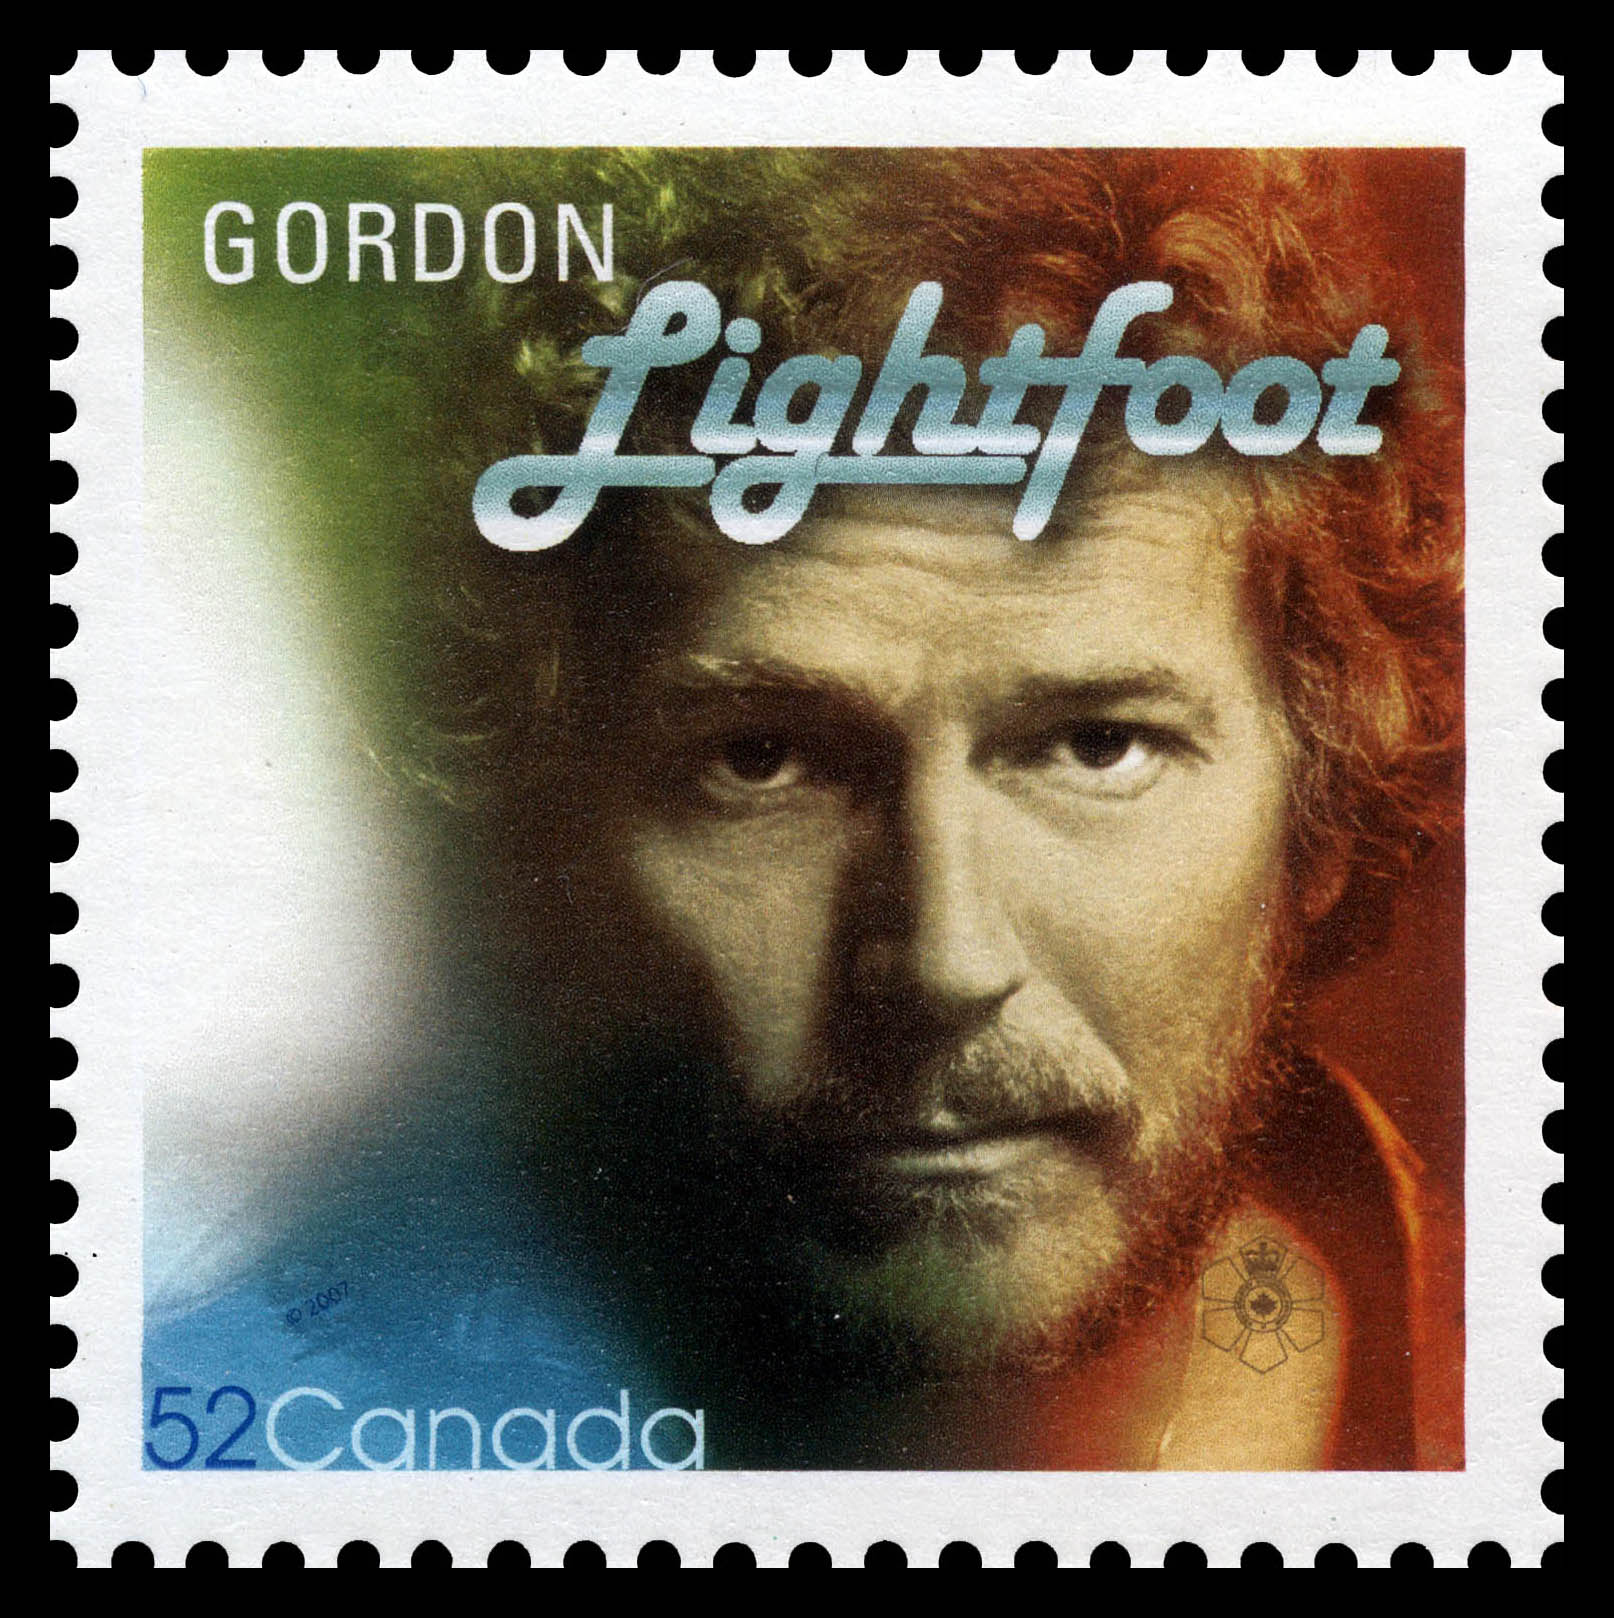 Gordon Lightfoot Canada Postage Stamp | Canadian Recording Artists